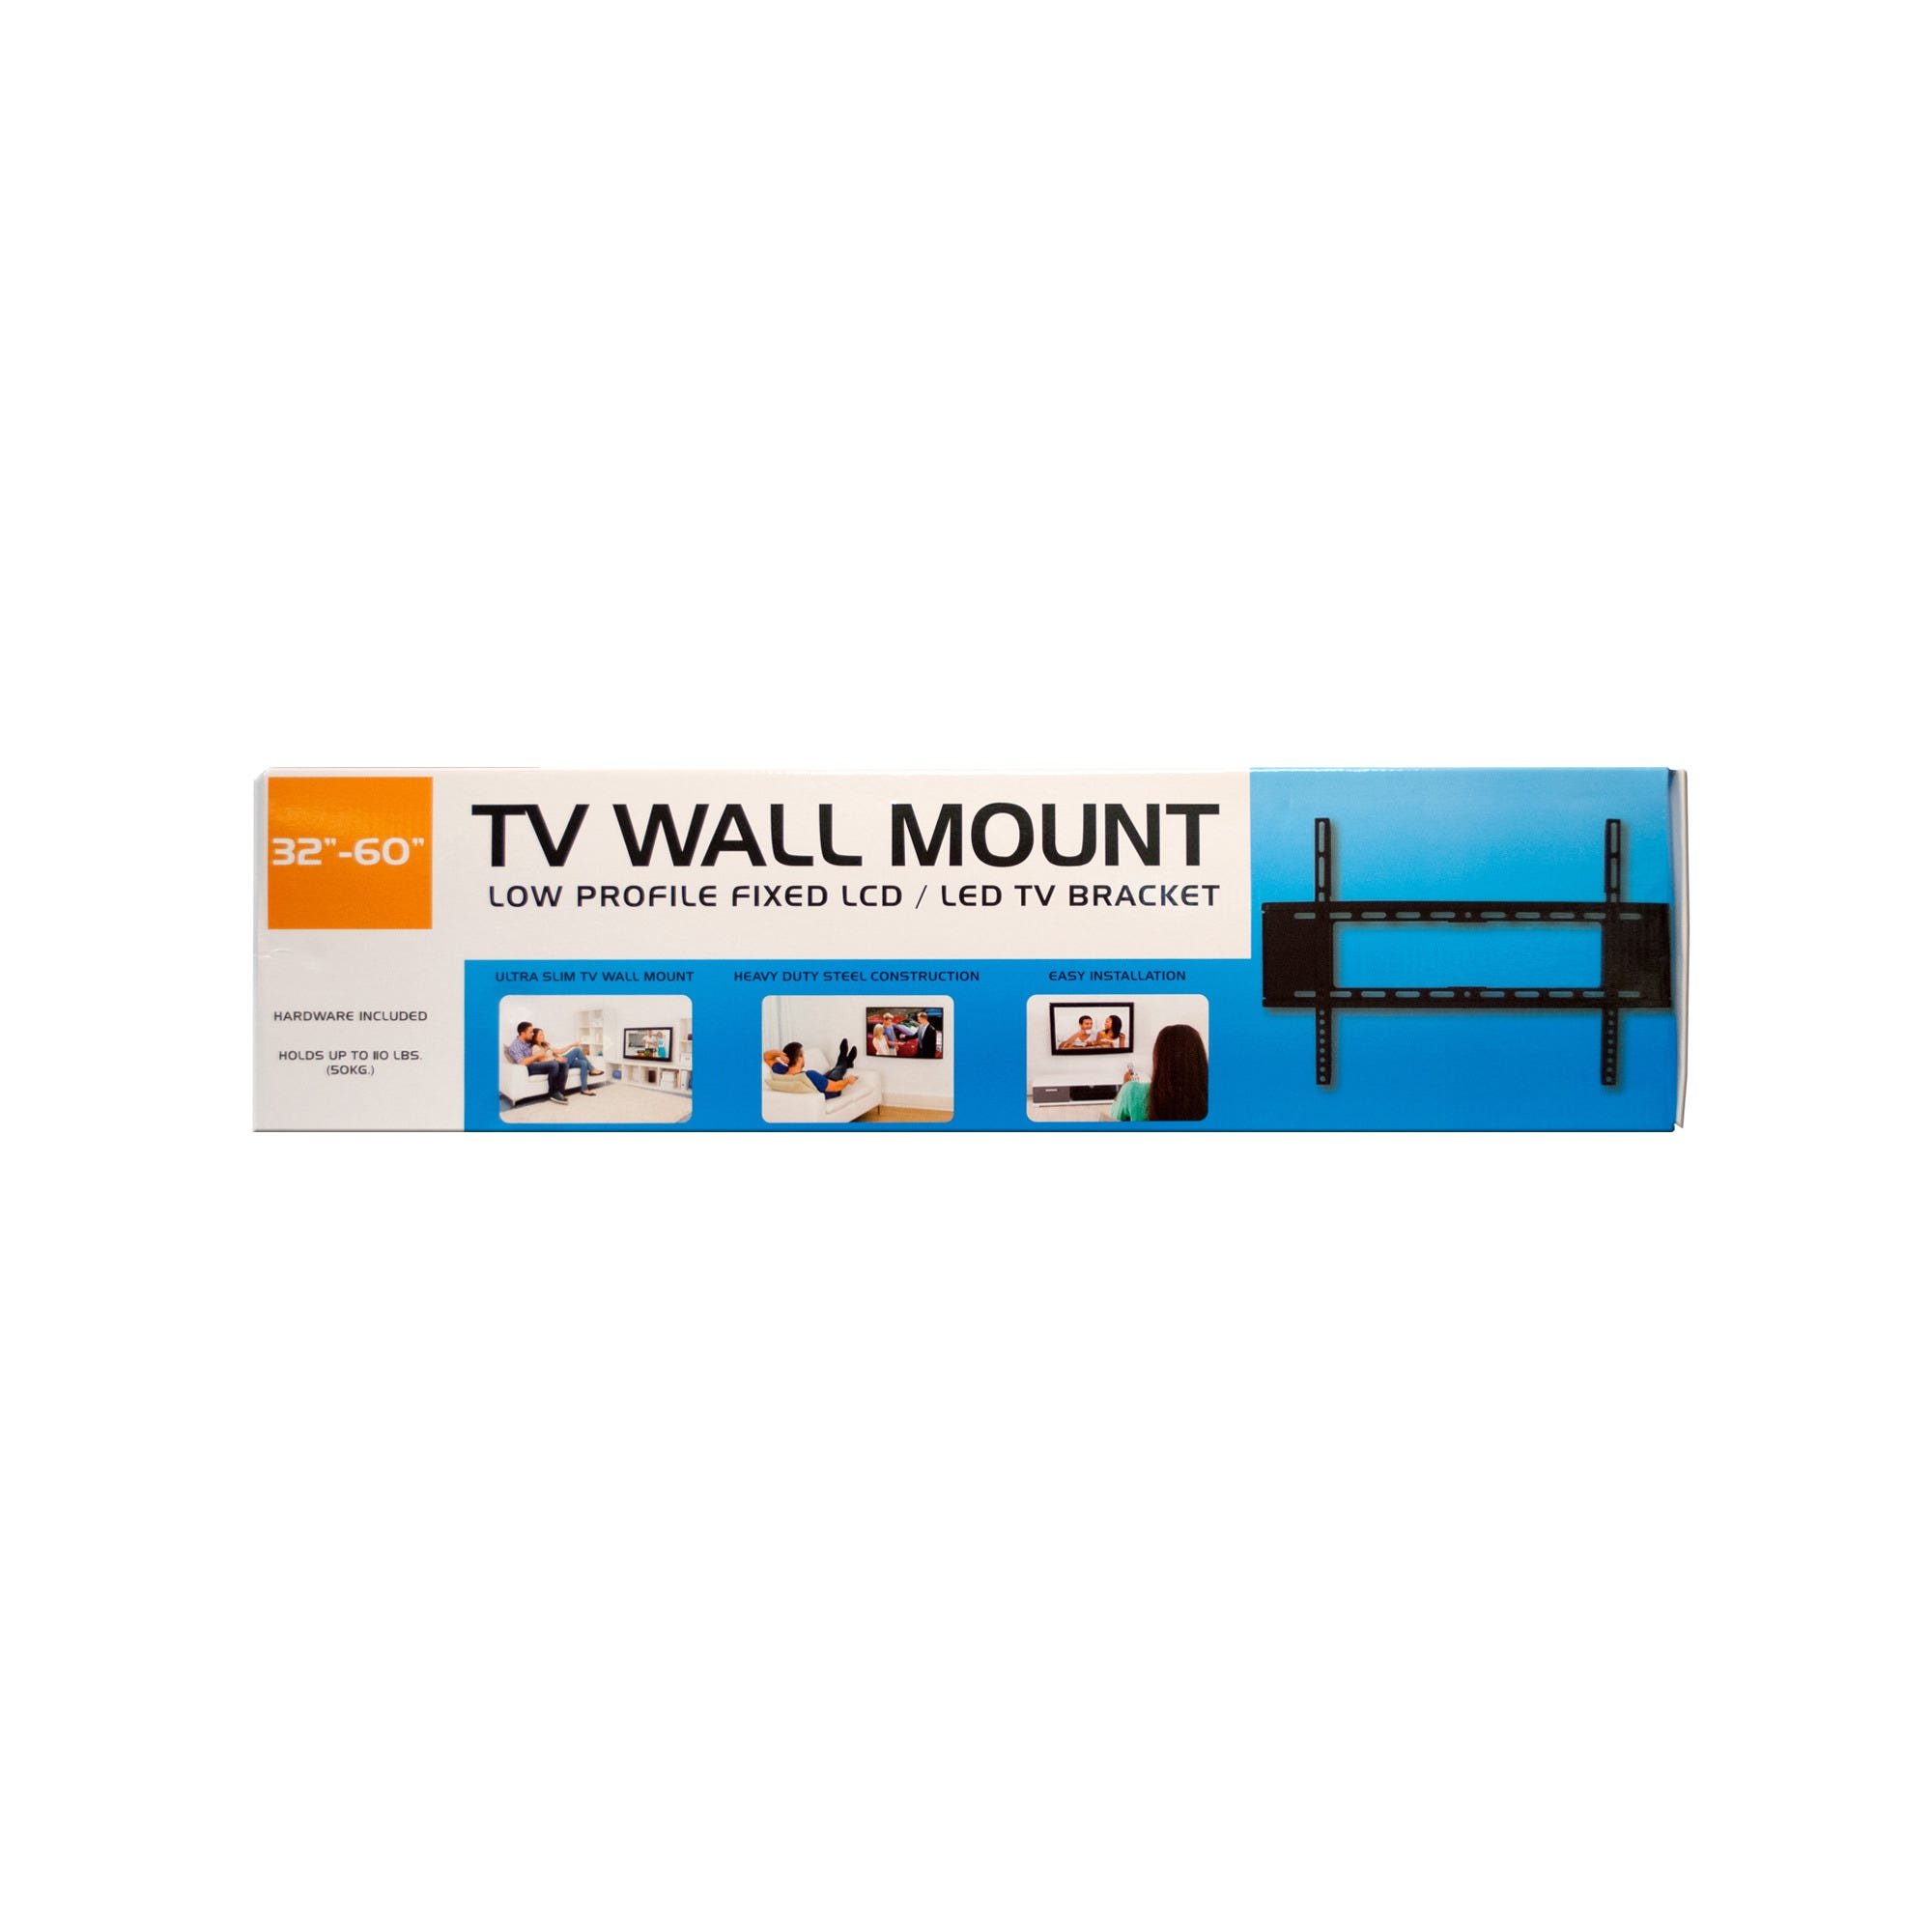 large-low-profile-TV-wall-mount